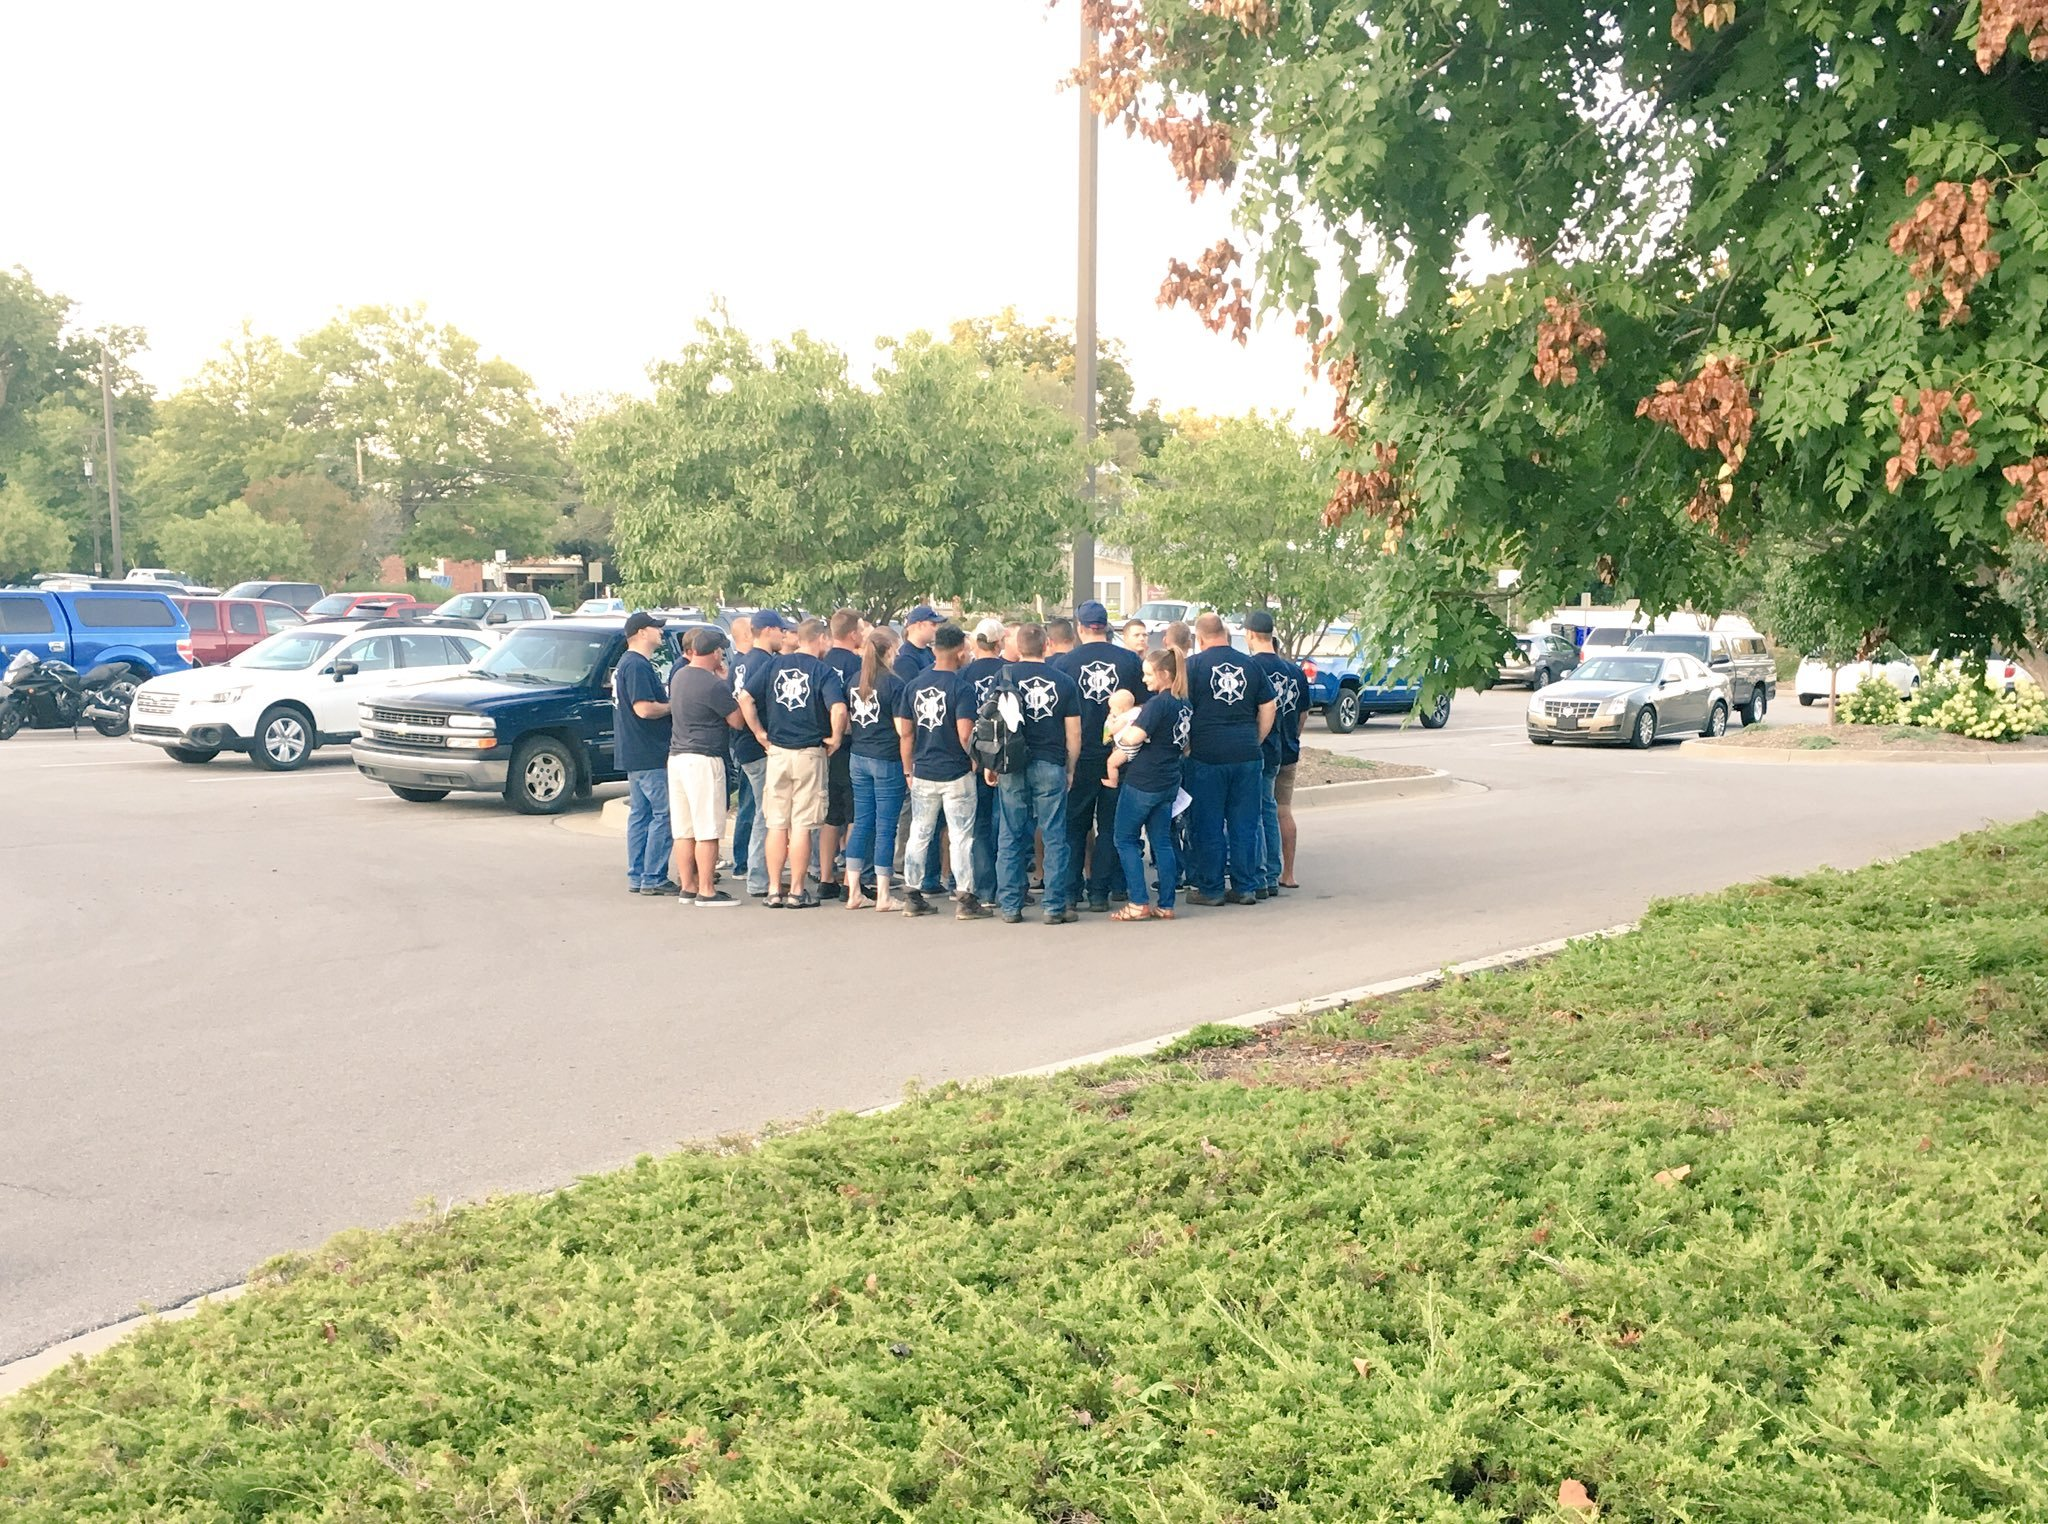 A show of solidarity by the Olathe Fire Department after its union president addressed city council about public safety concerns. (Rudy Harper)